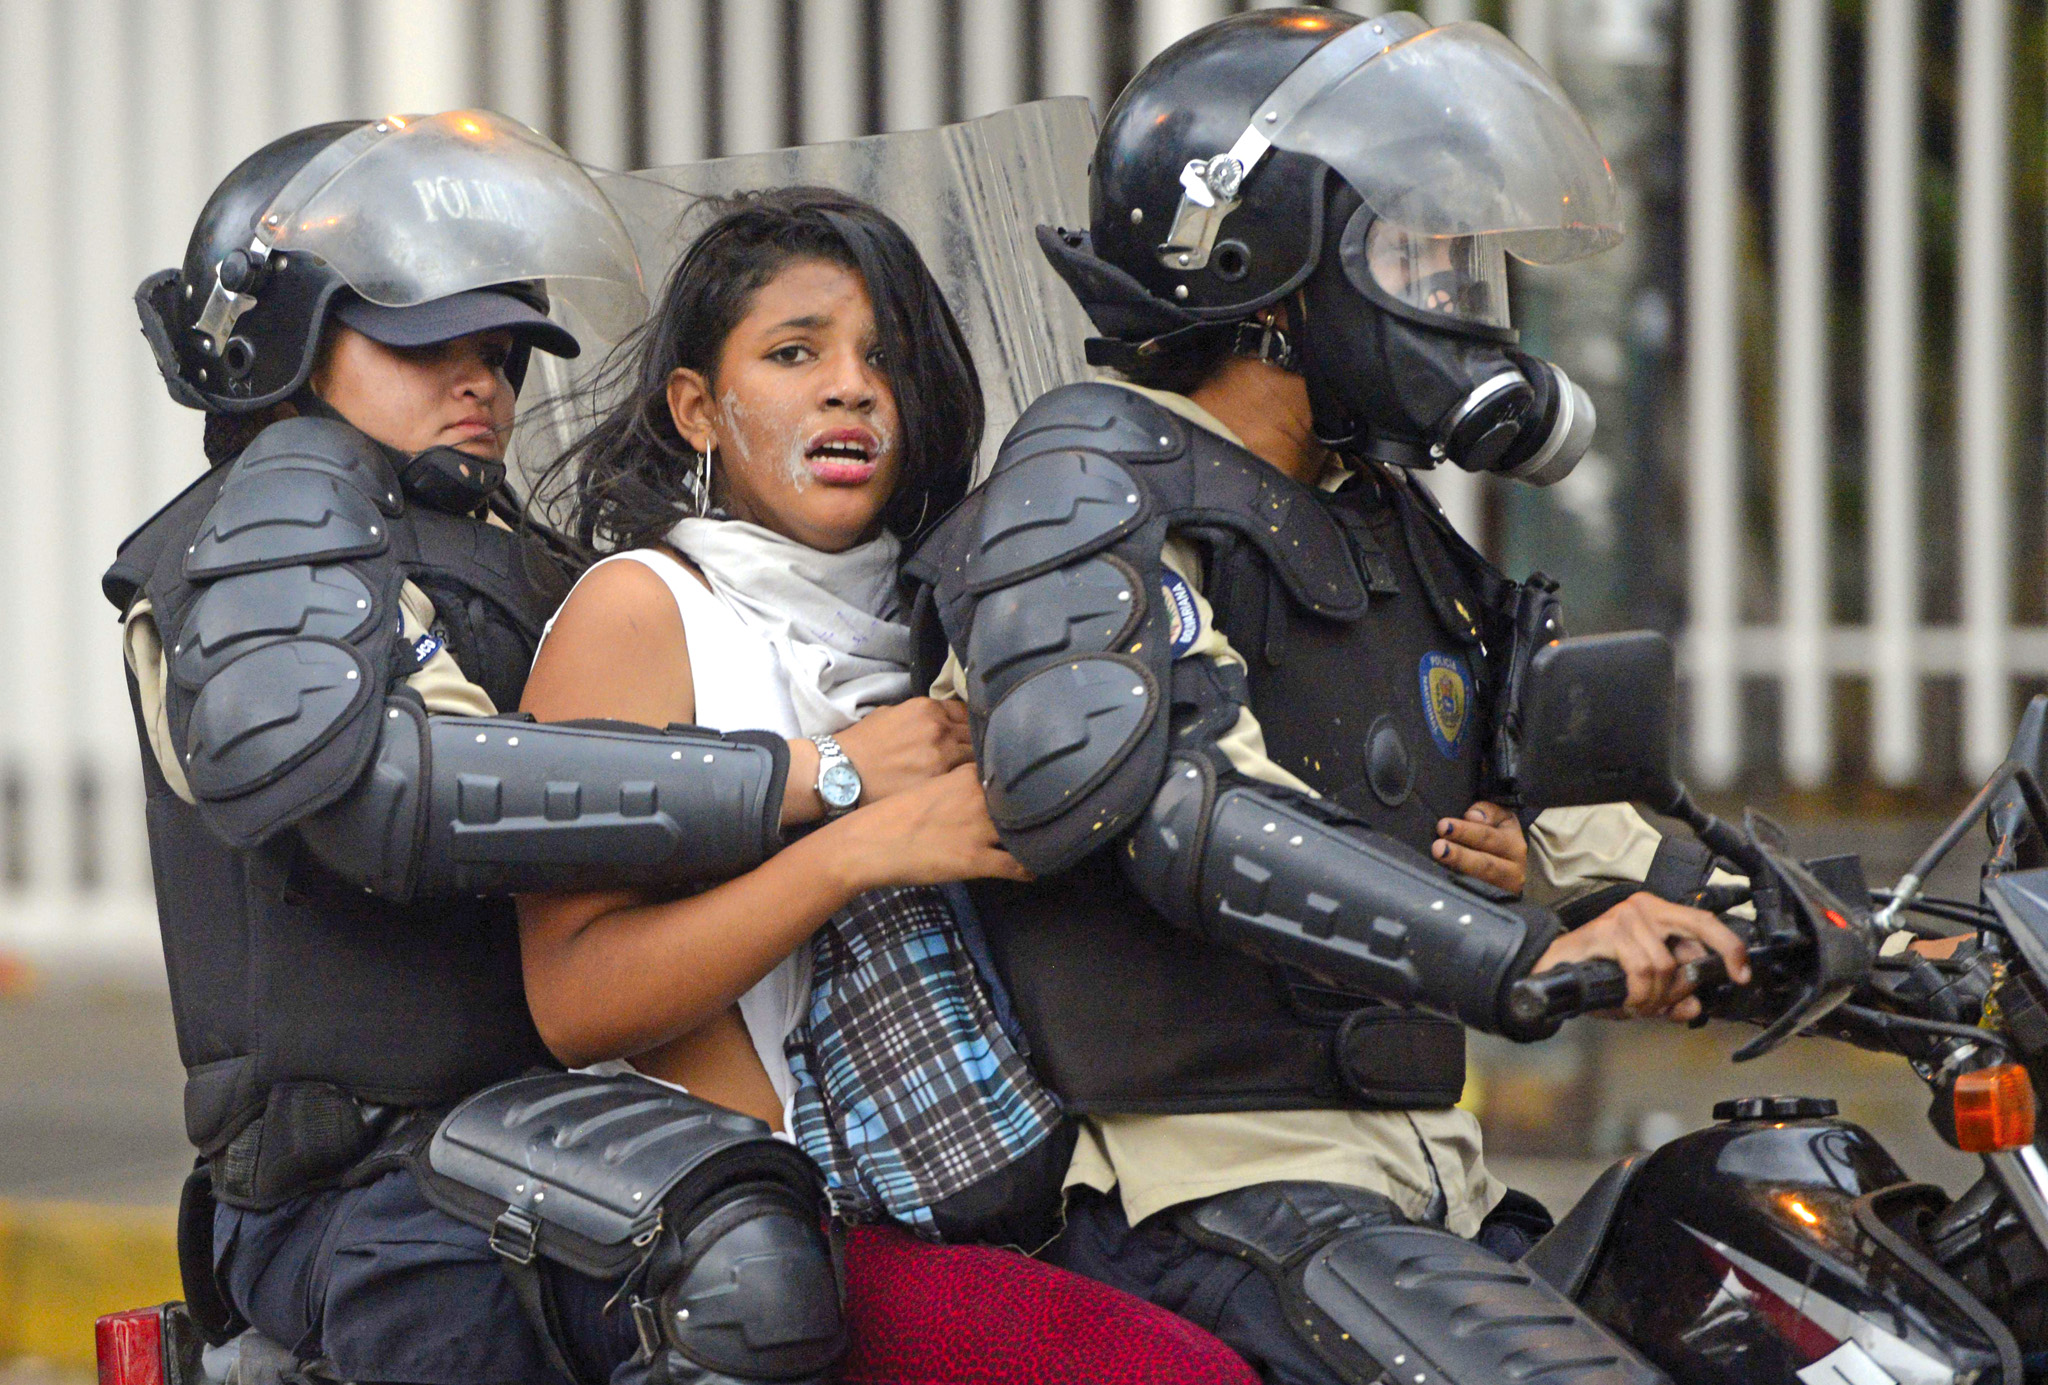 "TOPSHOTS An anti-government activist is ...TOPSHOTS An anti-government activist is arrested by national police during a protest against Venezuela President Nicolas Maduro government in Caracas on March 13, 2014. A total of 28 people have been killed and 365 injured in anti-government protests rocking Venezuela, the country's top prosecutor said Thursday, lamenting an atmosphere of ""violence and chaos"".AFP PHOTO/LEO RAMIREZLEO RAMIREZ/AFP/Getty Images"